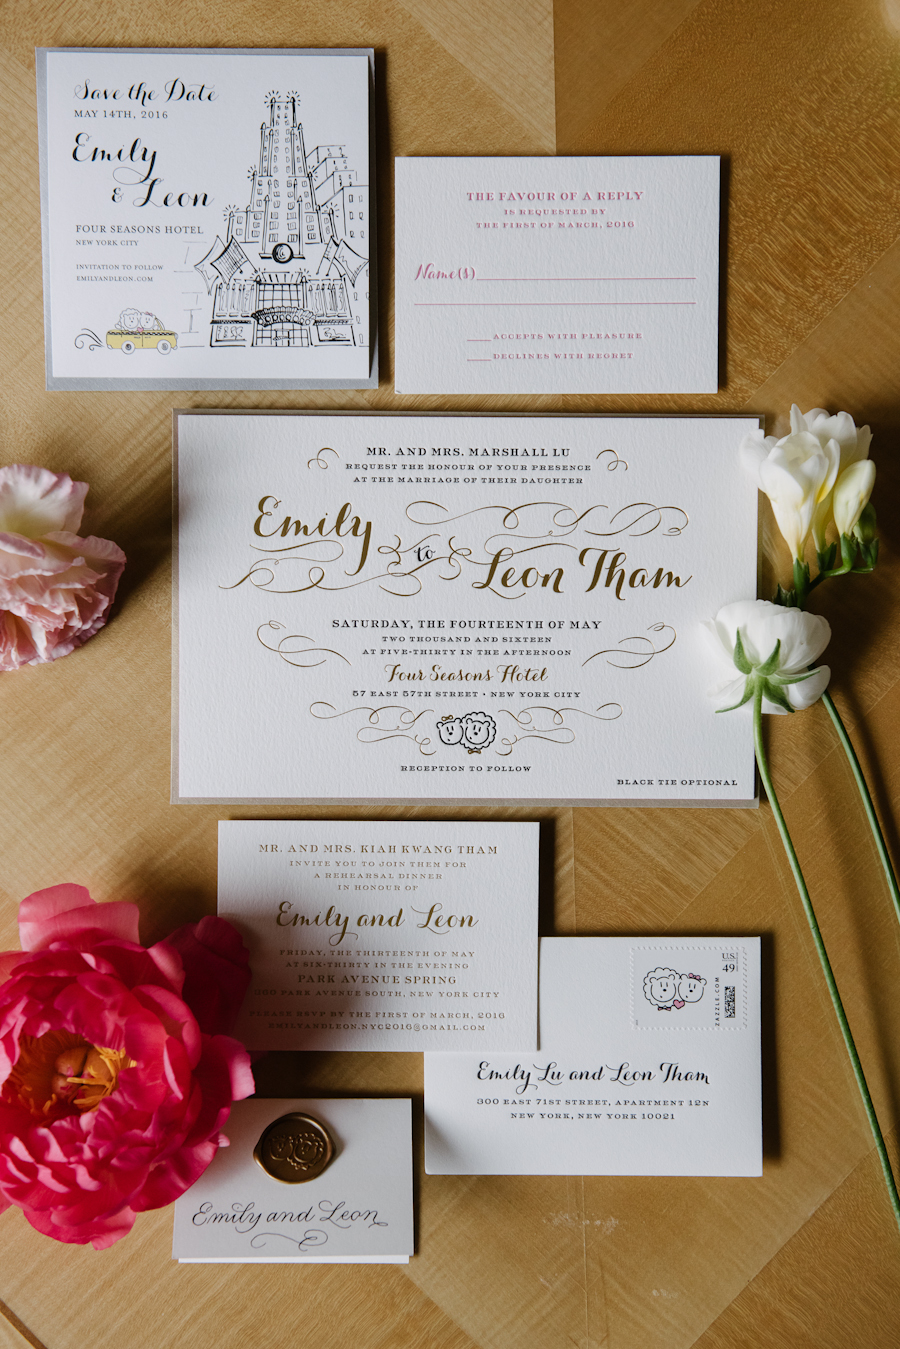 four seasons hotel wedding ang weddings and events brian hatton photography-3.jpg